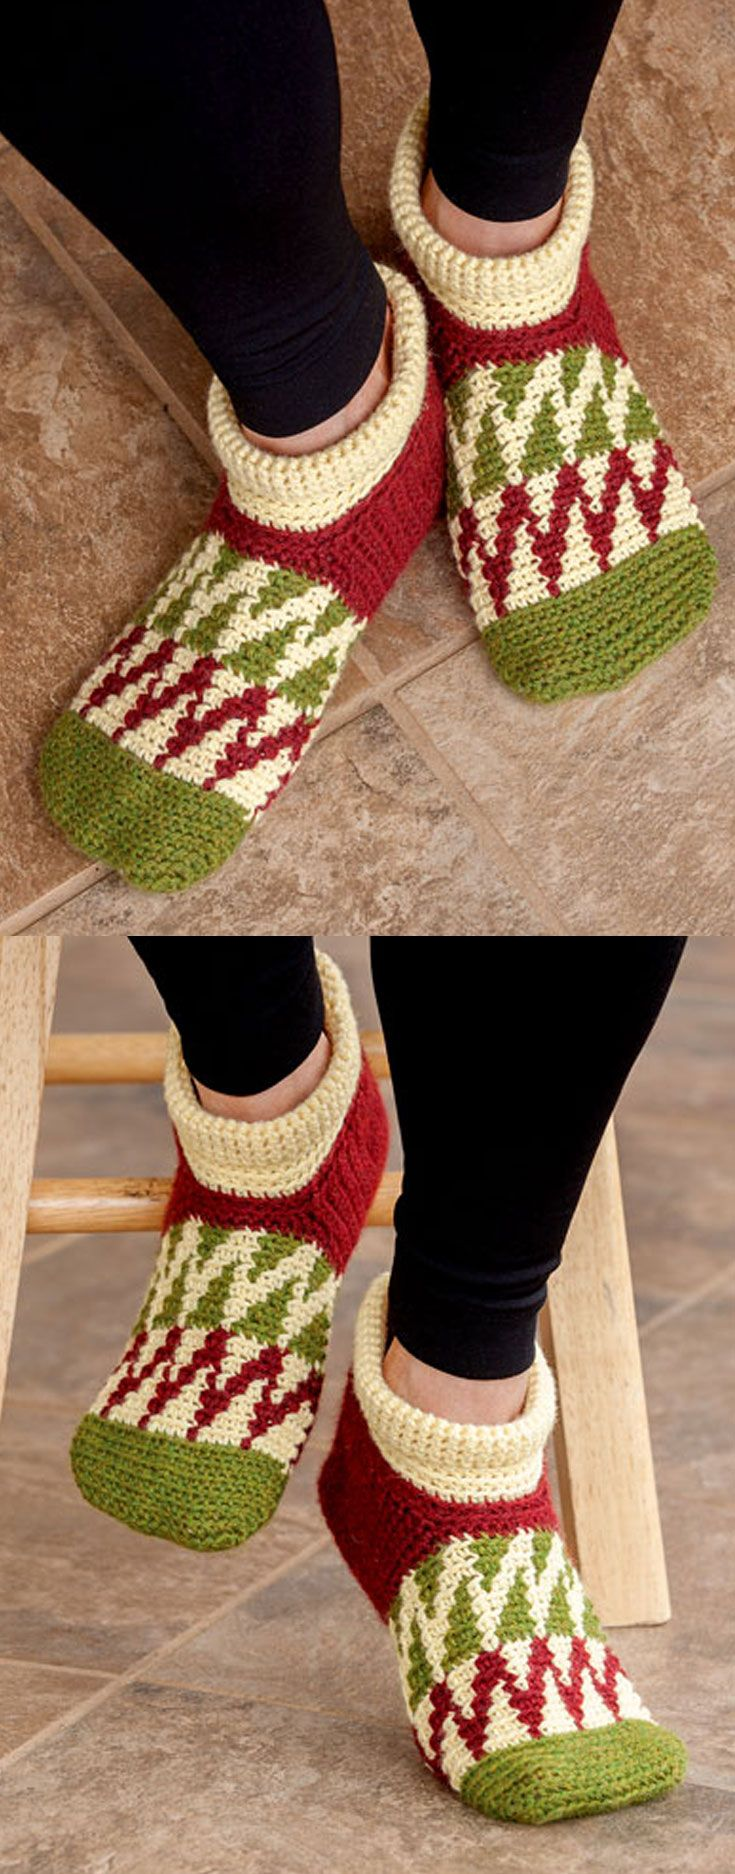 Peaked Waves Slippers in 3 sizes (small, medium, large), in Learn to Tapestry Crochet book, that includes basic steps on how to carry and wrap yarn, change colors, step-by-step photos, written instructions and charts. A great learn-to book! Also included are 6 projects perfect for a beginner.